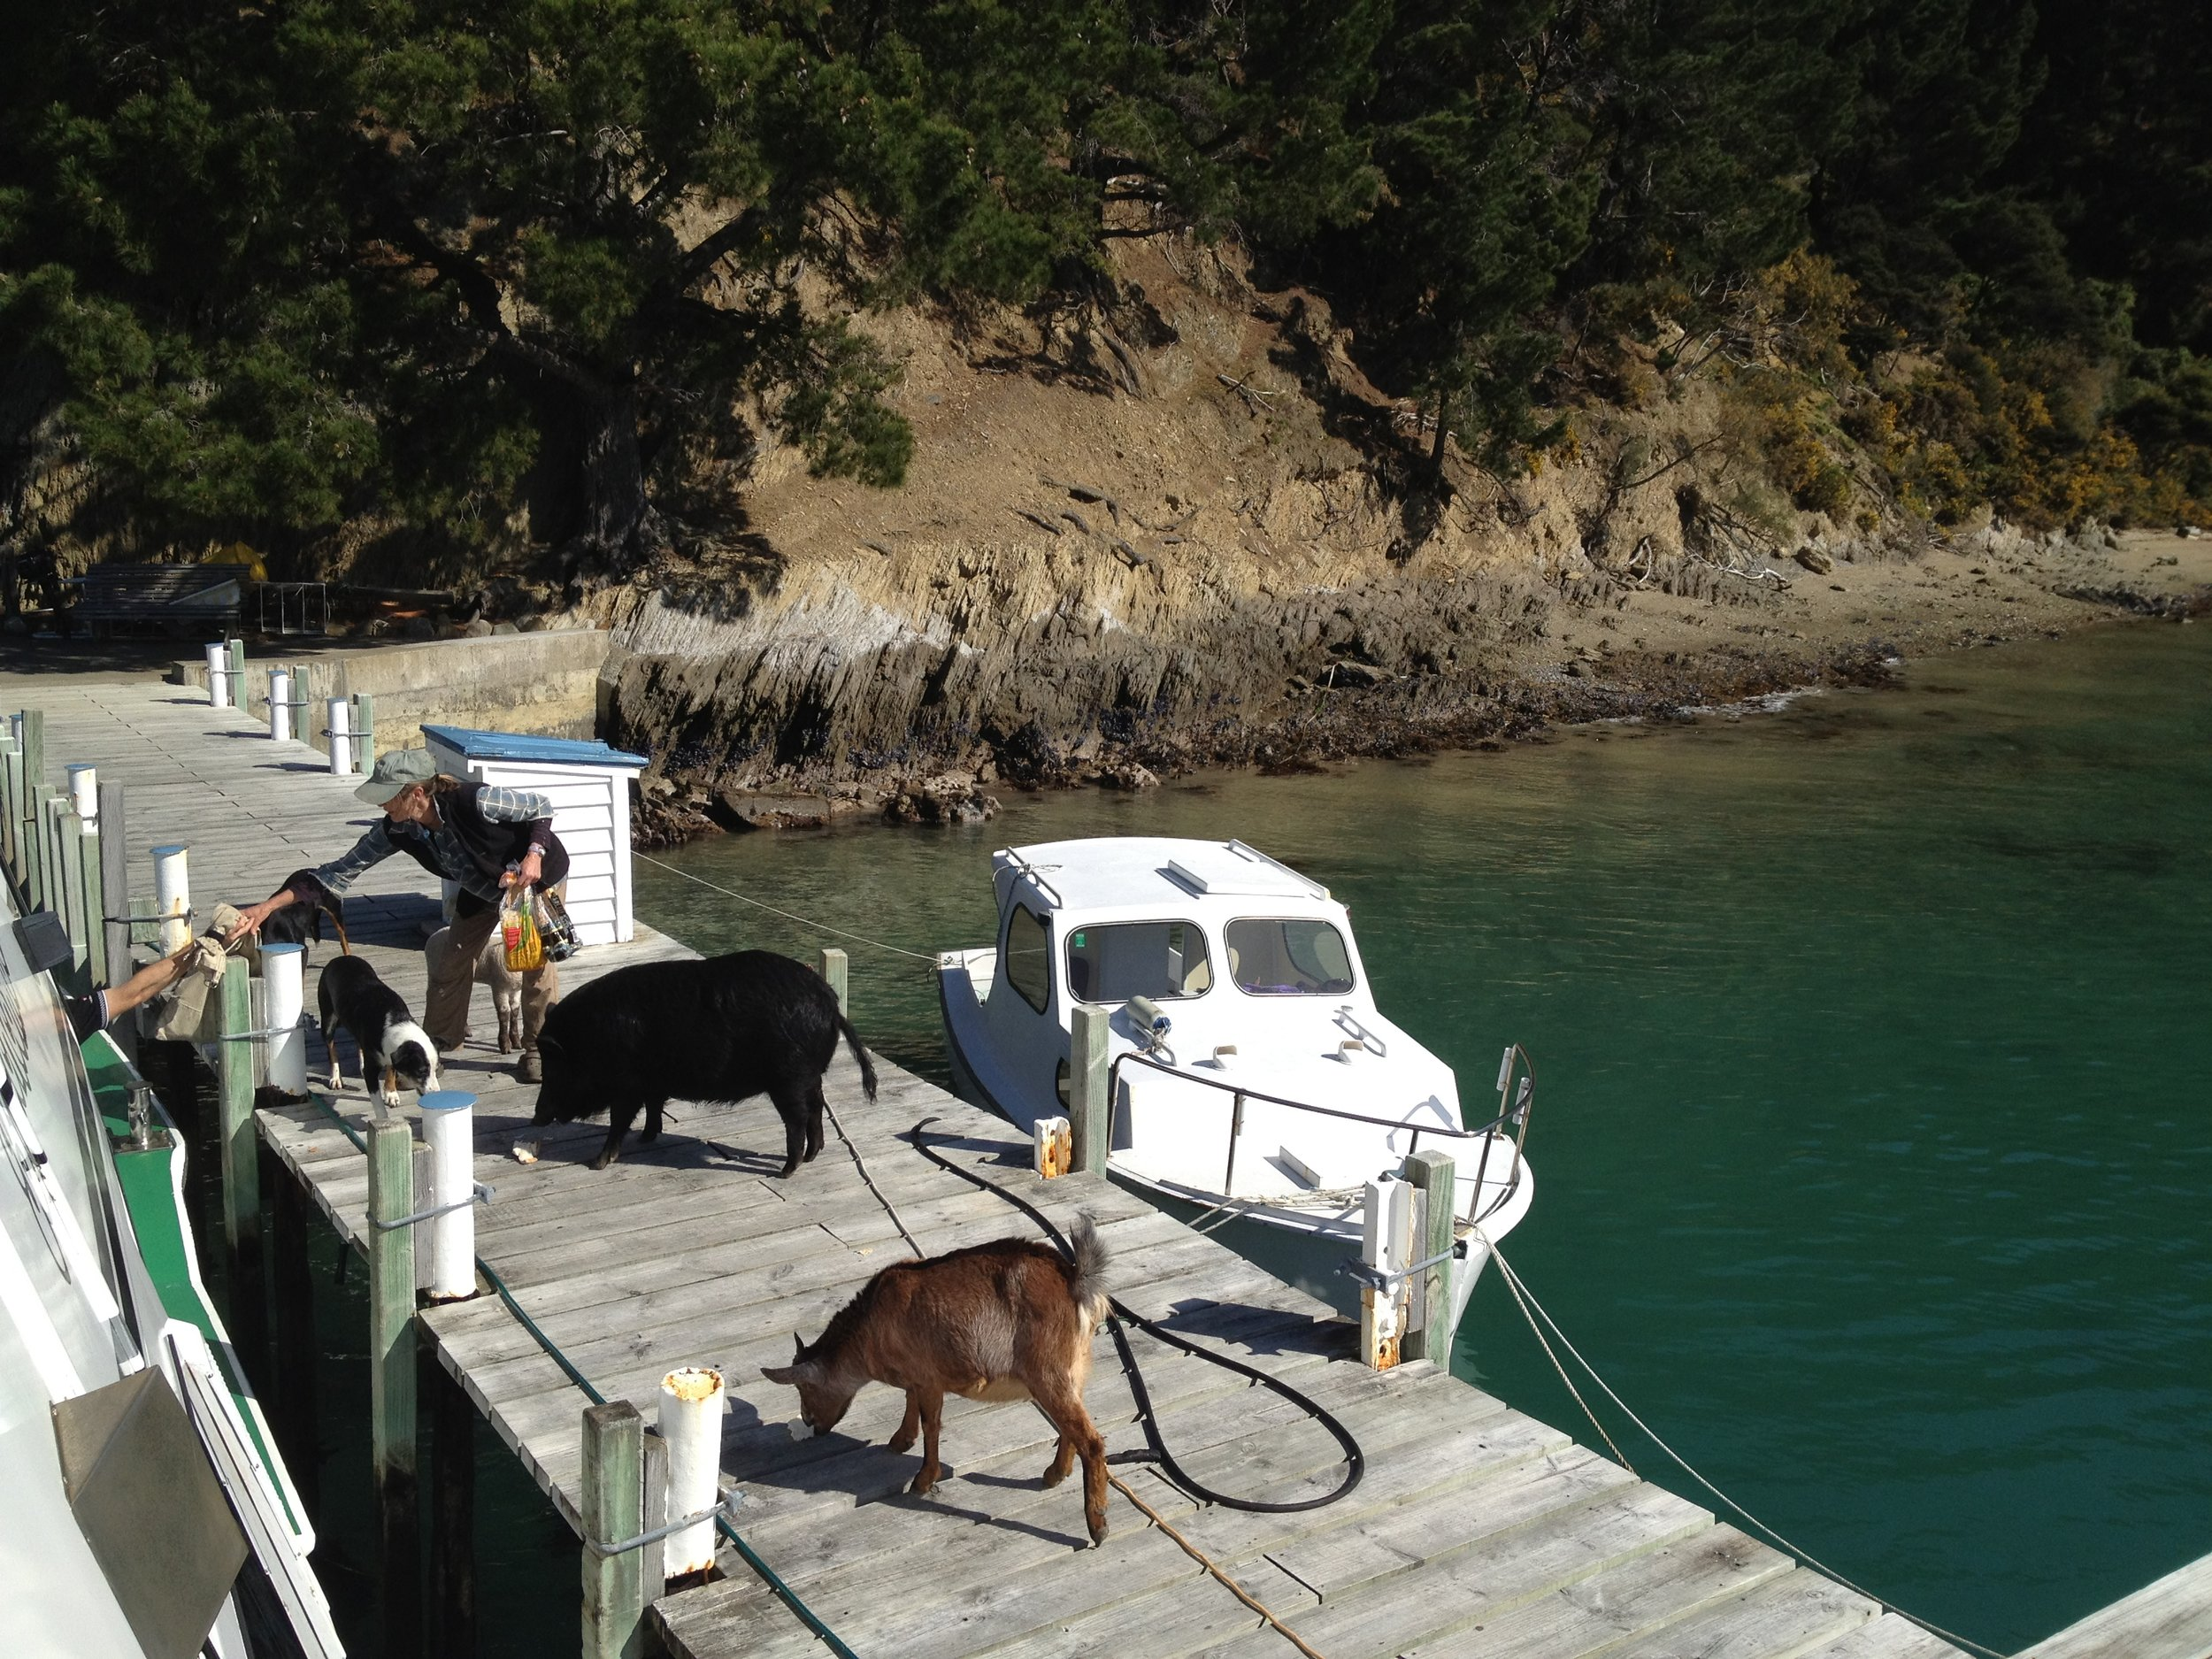 A regular mail boat service brings goods and visitors to Arapawa Island from Picton (image Jacqui Gibson).